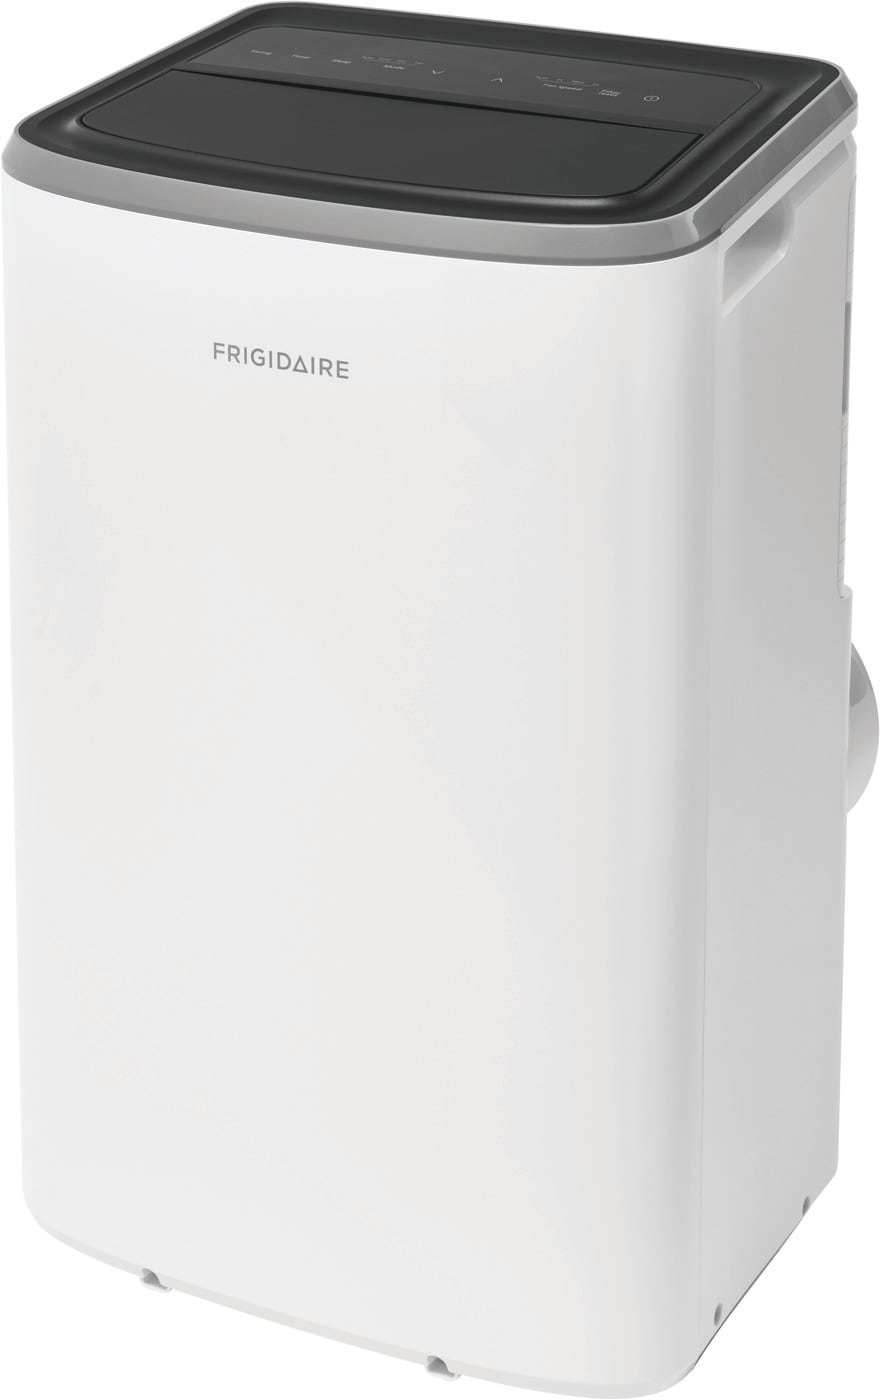 8,000 BTU Portable Room Air Conditioner with Dehumidifier Mode White FHPC082AB1